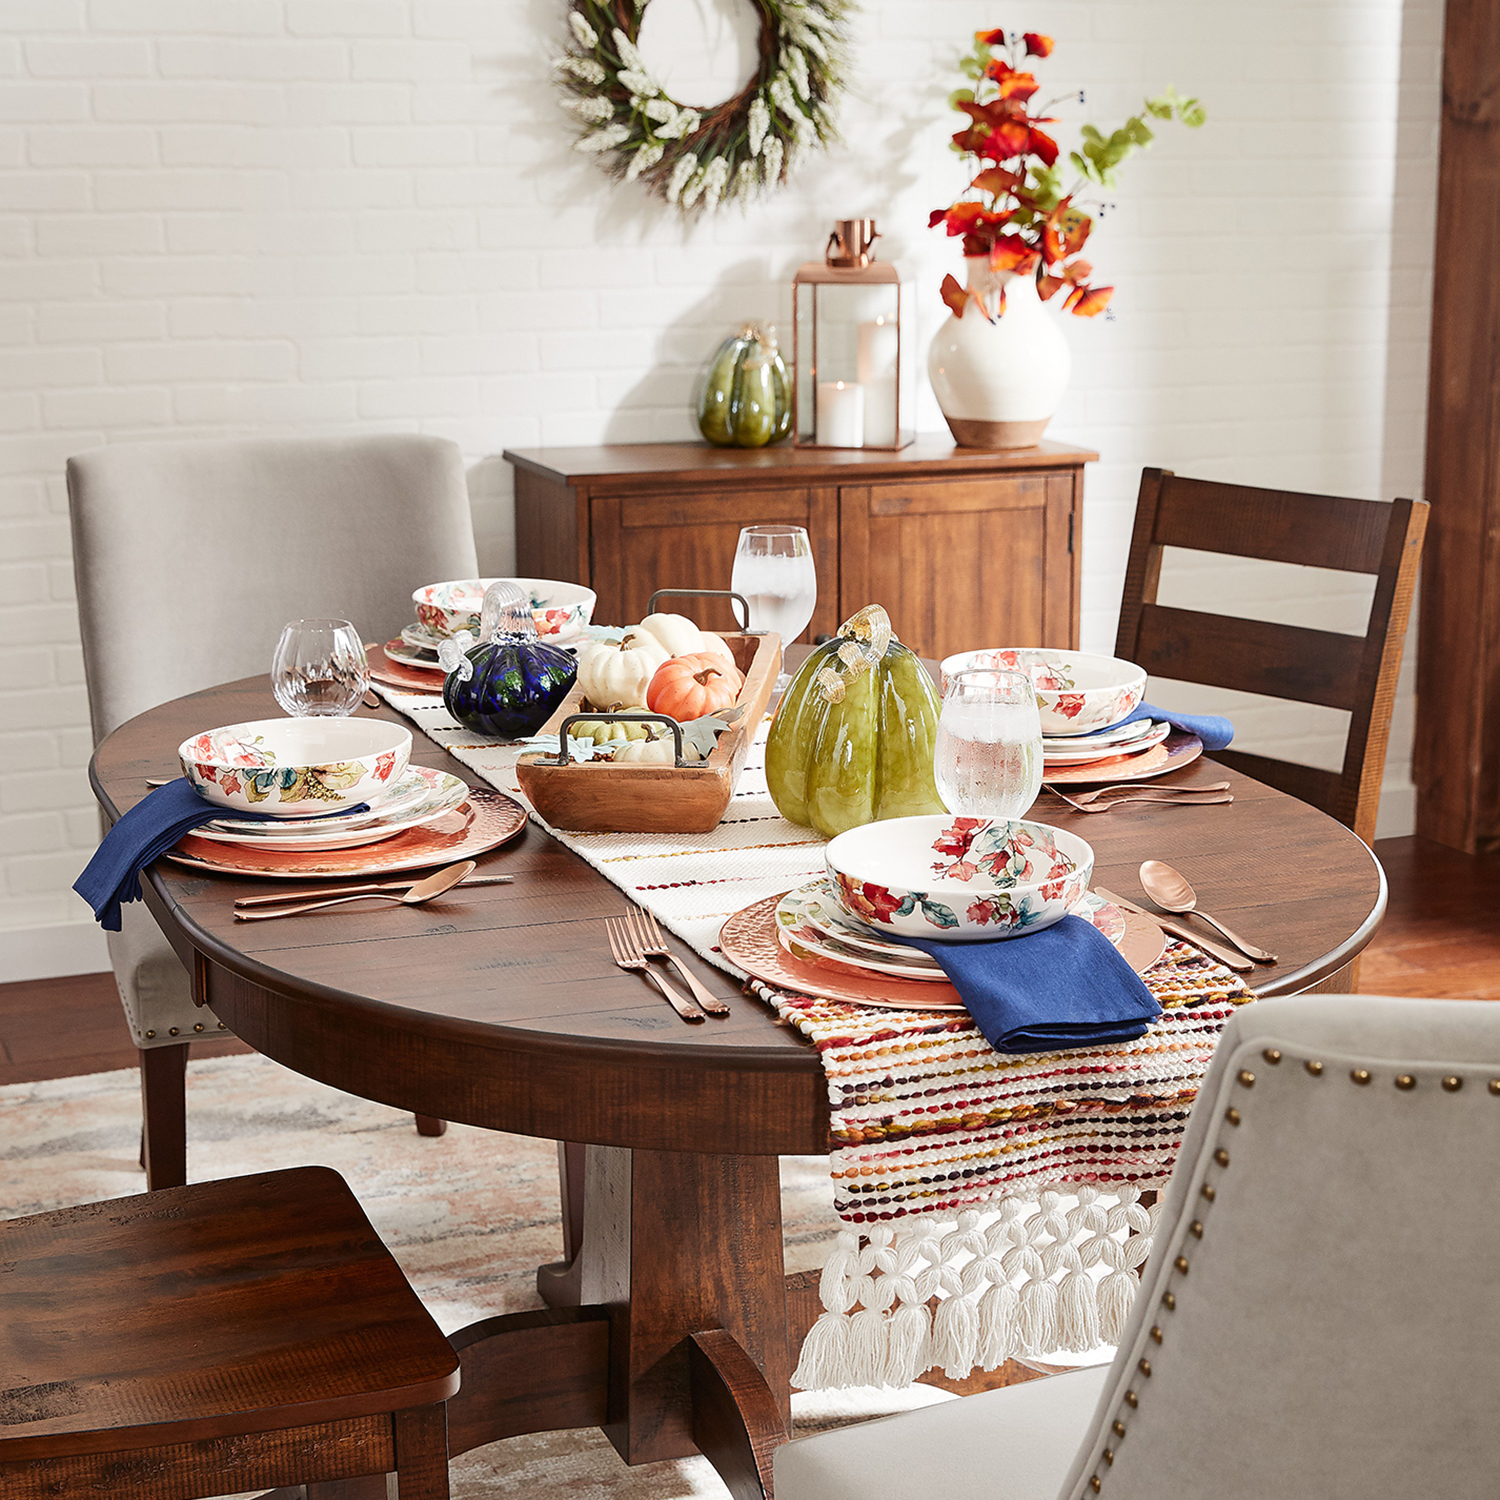 """72"""" Hooked Mundo Table Runner with Tassels"""